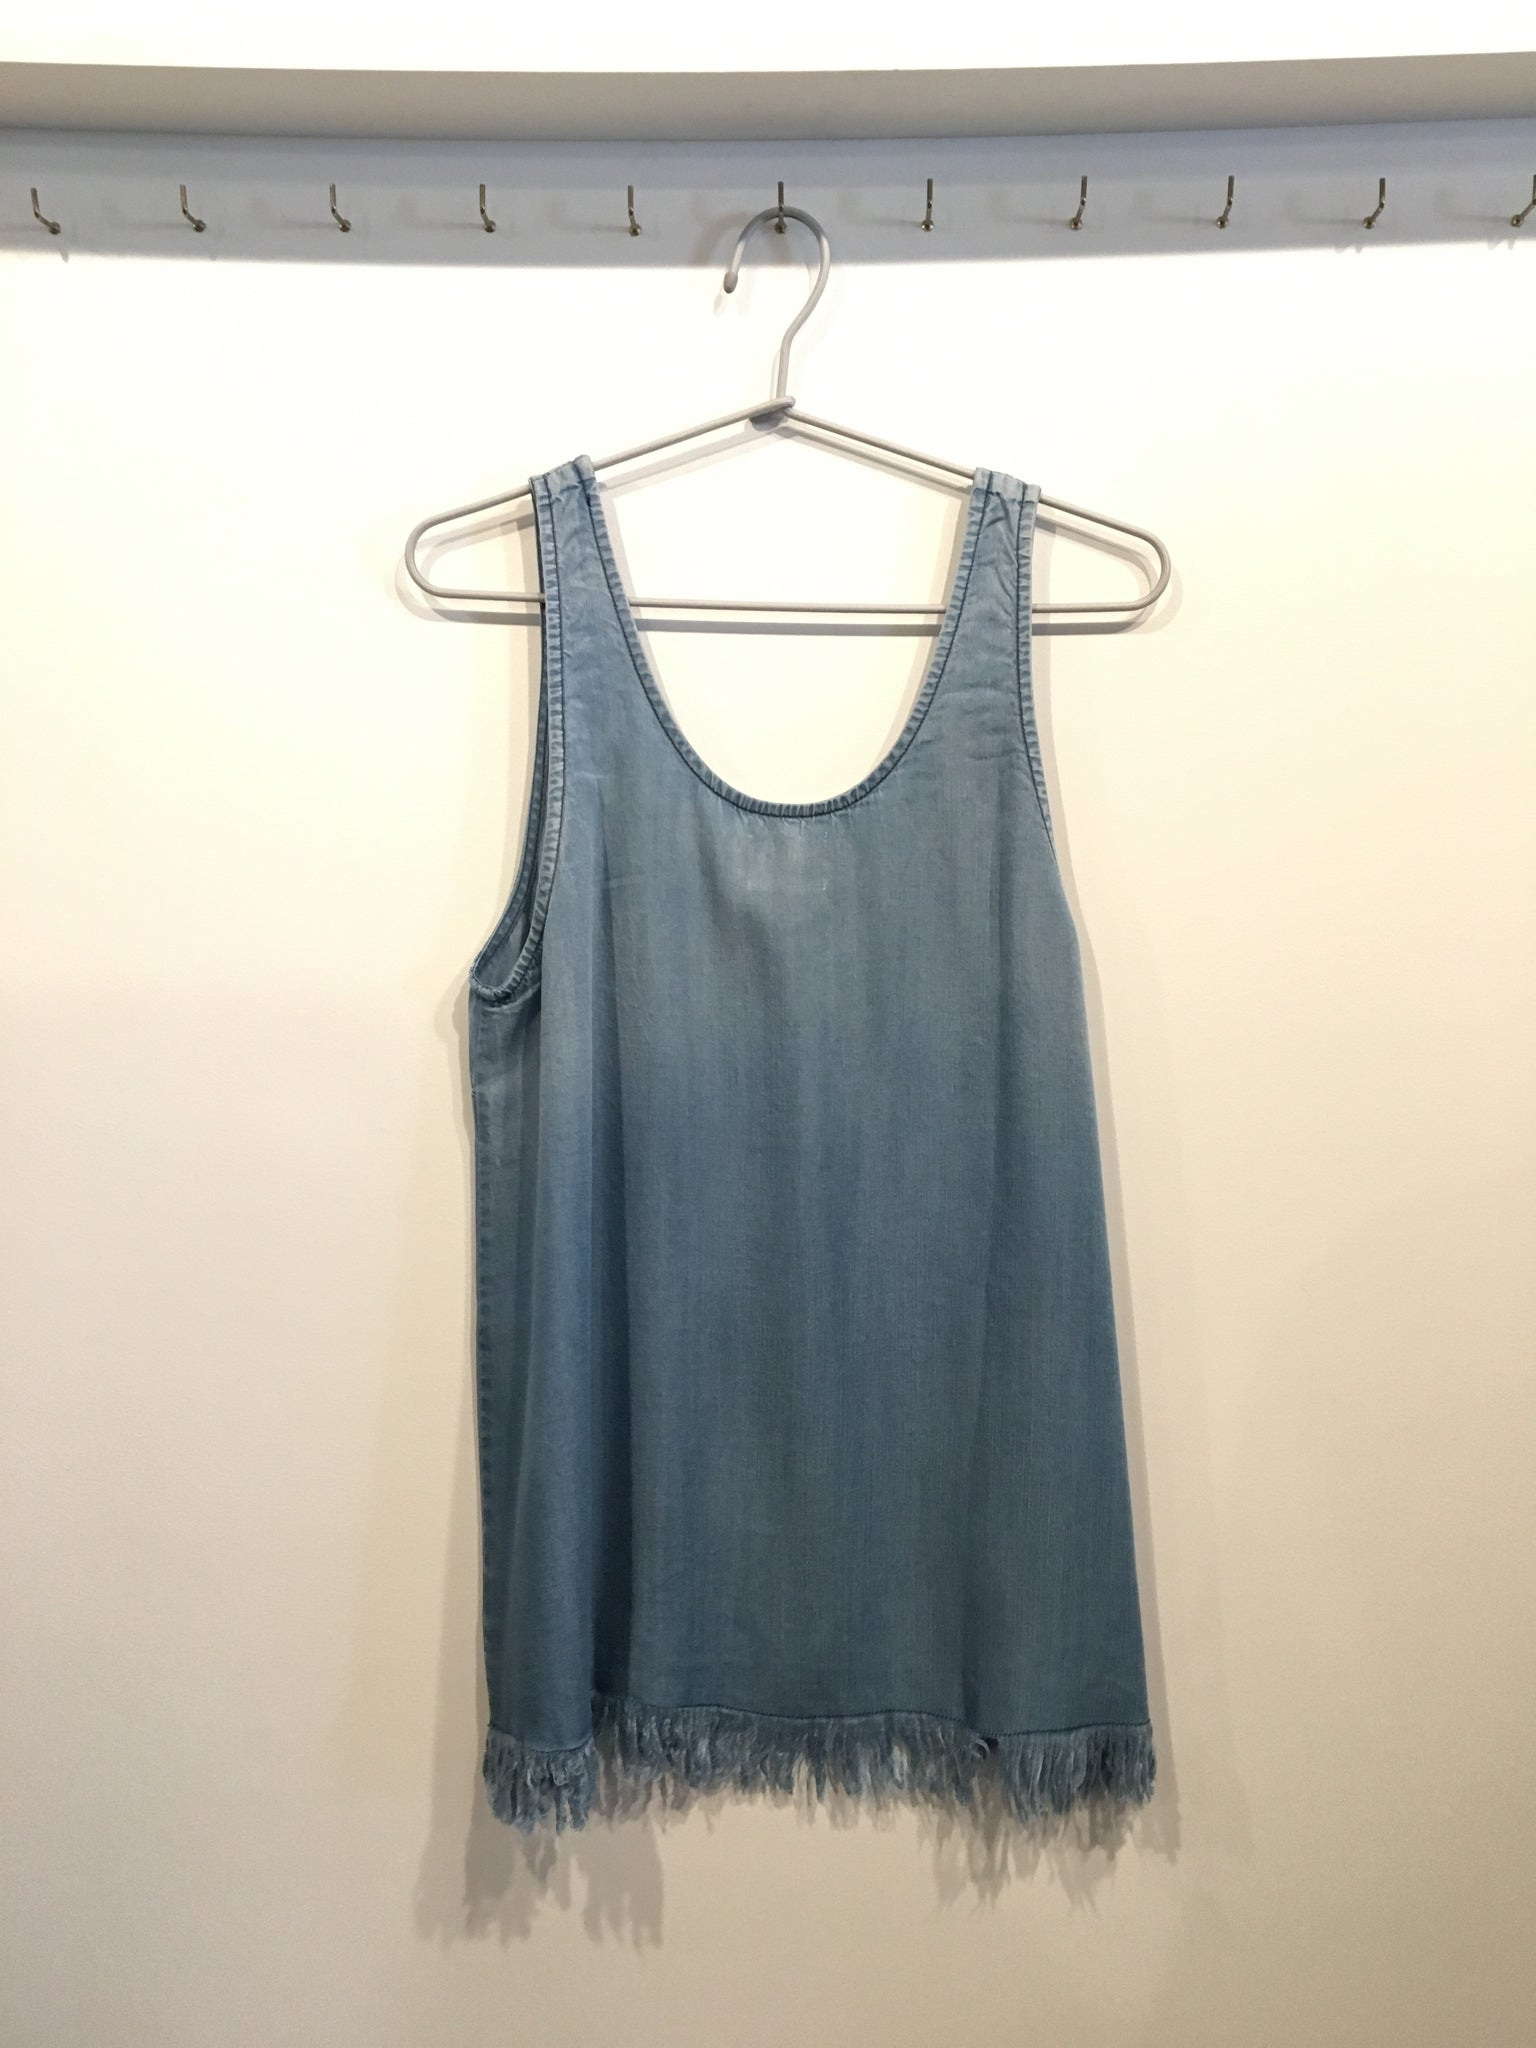 TINA + JO Feather tank